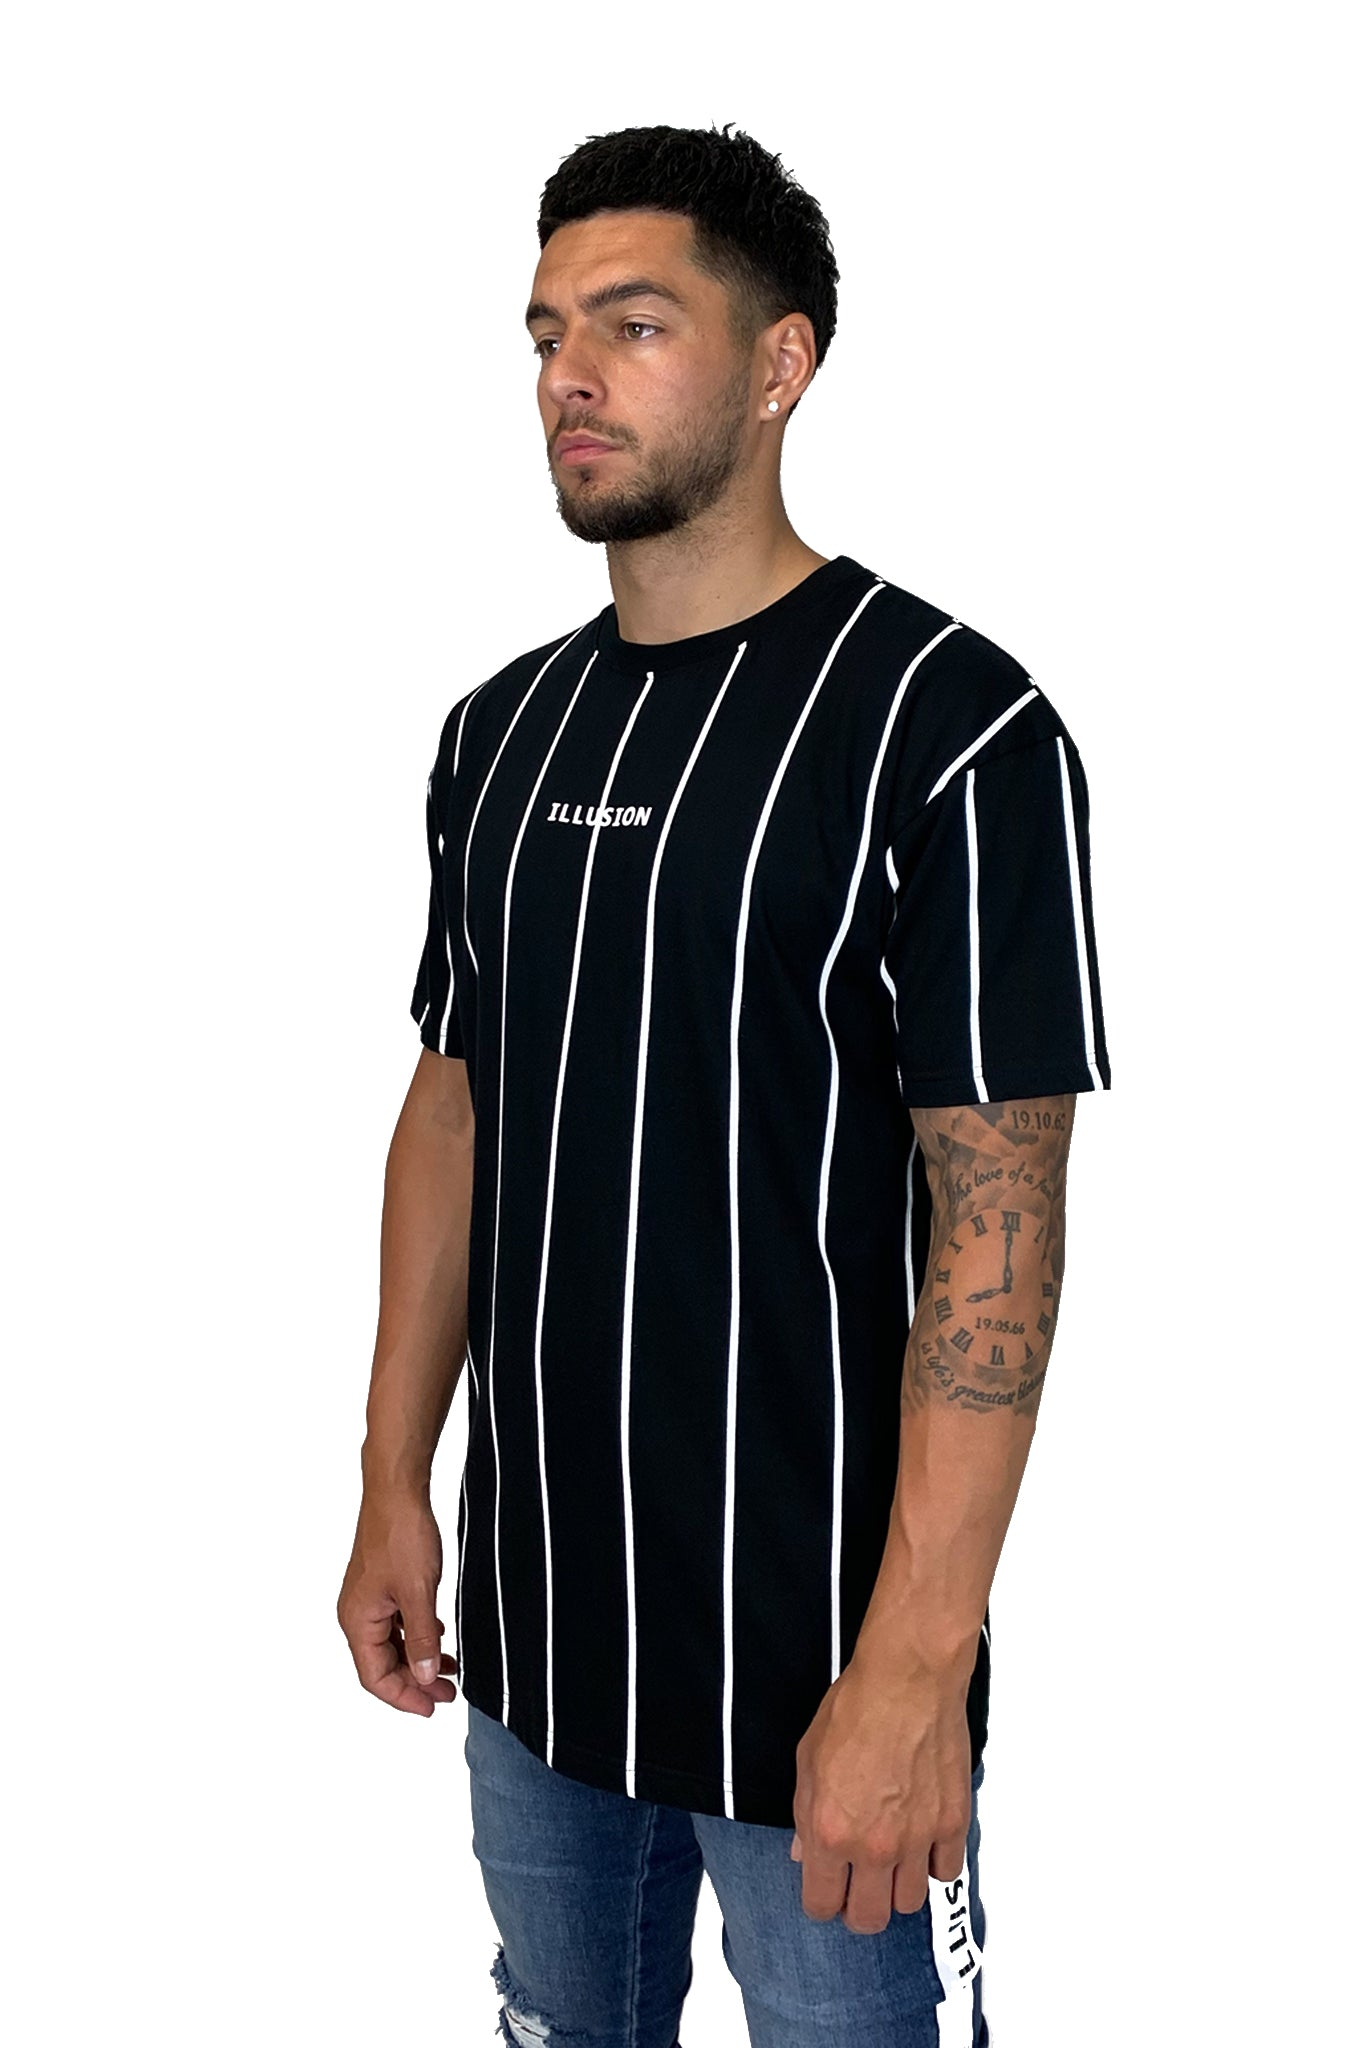 BLACK PINSTRIPE TEE - Illusion Attire